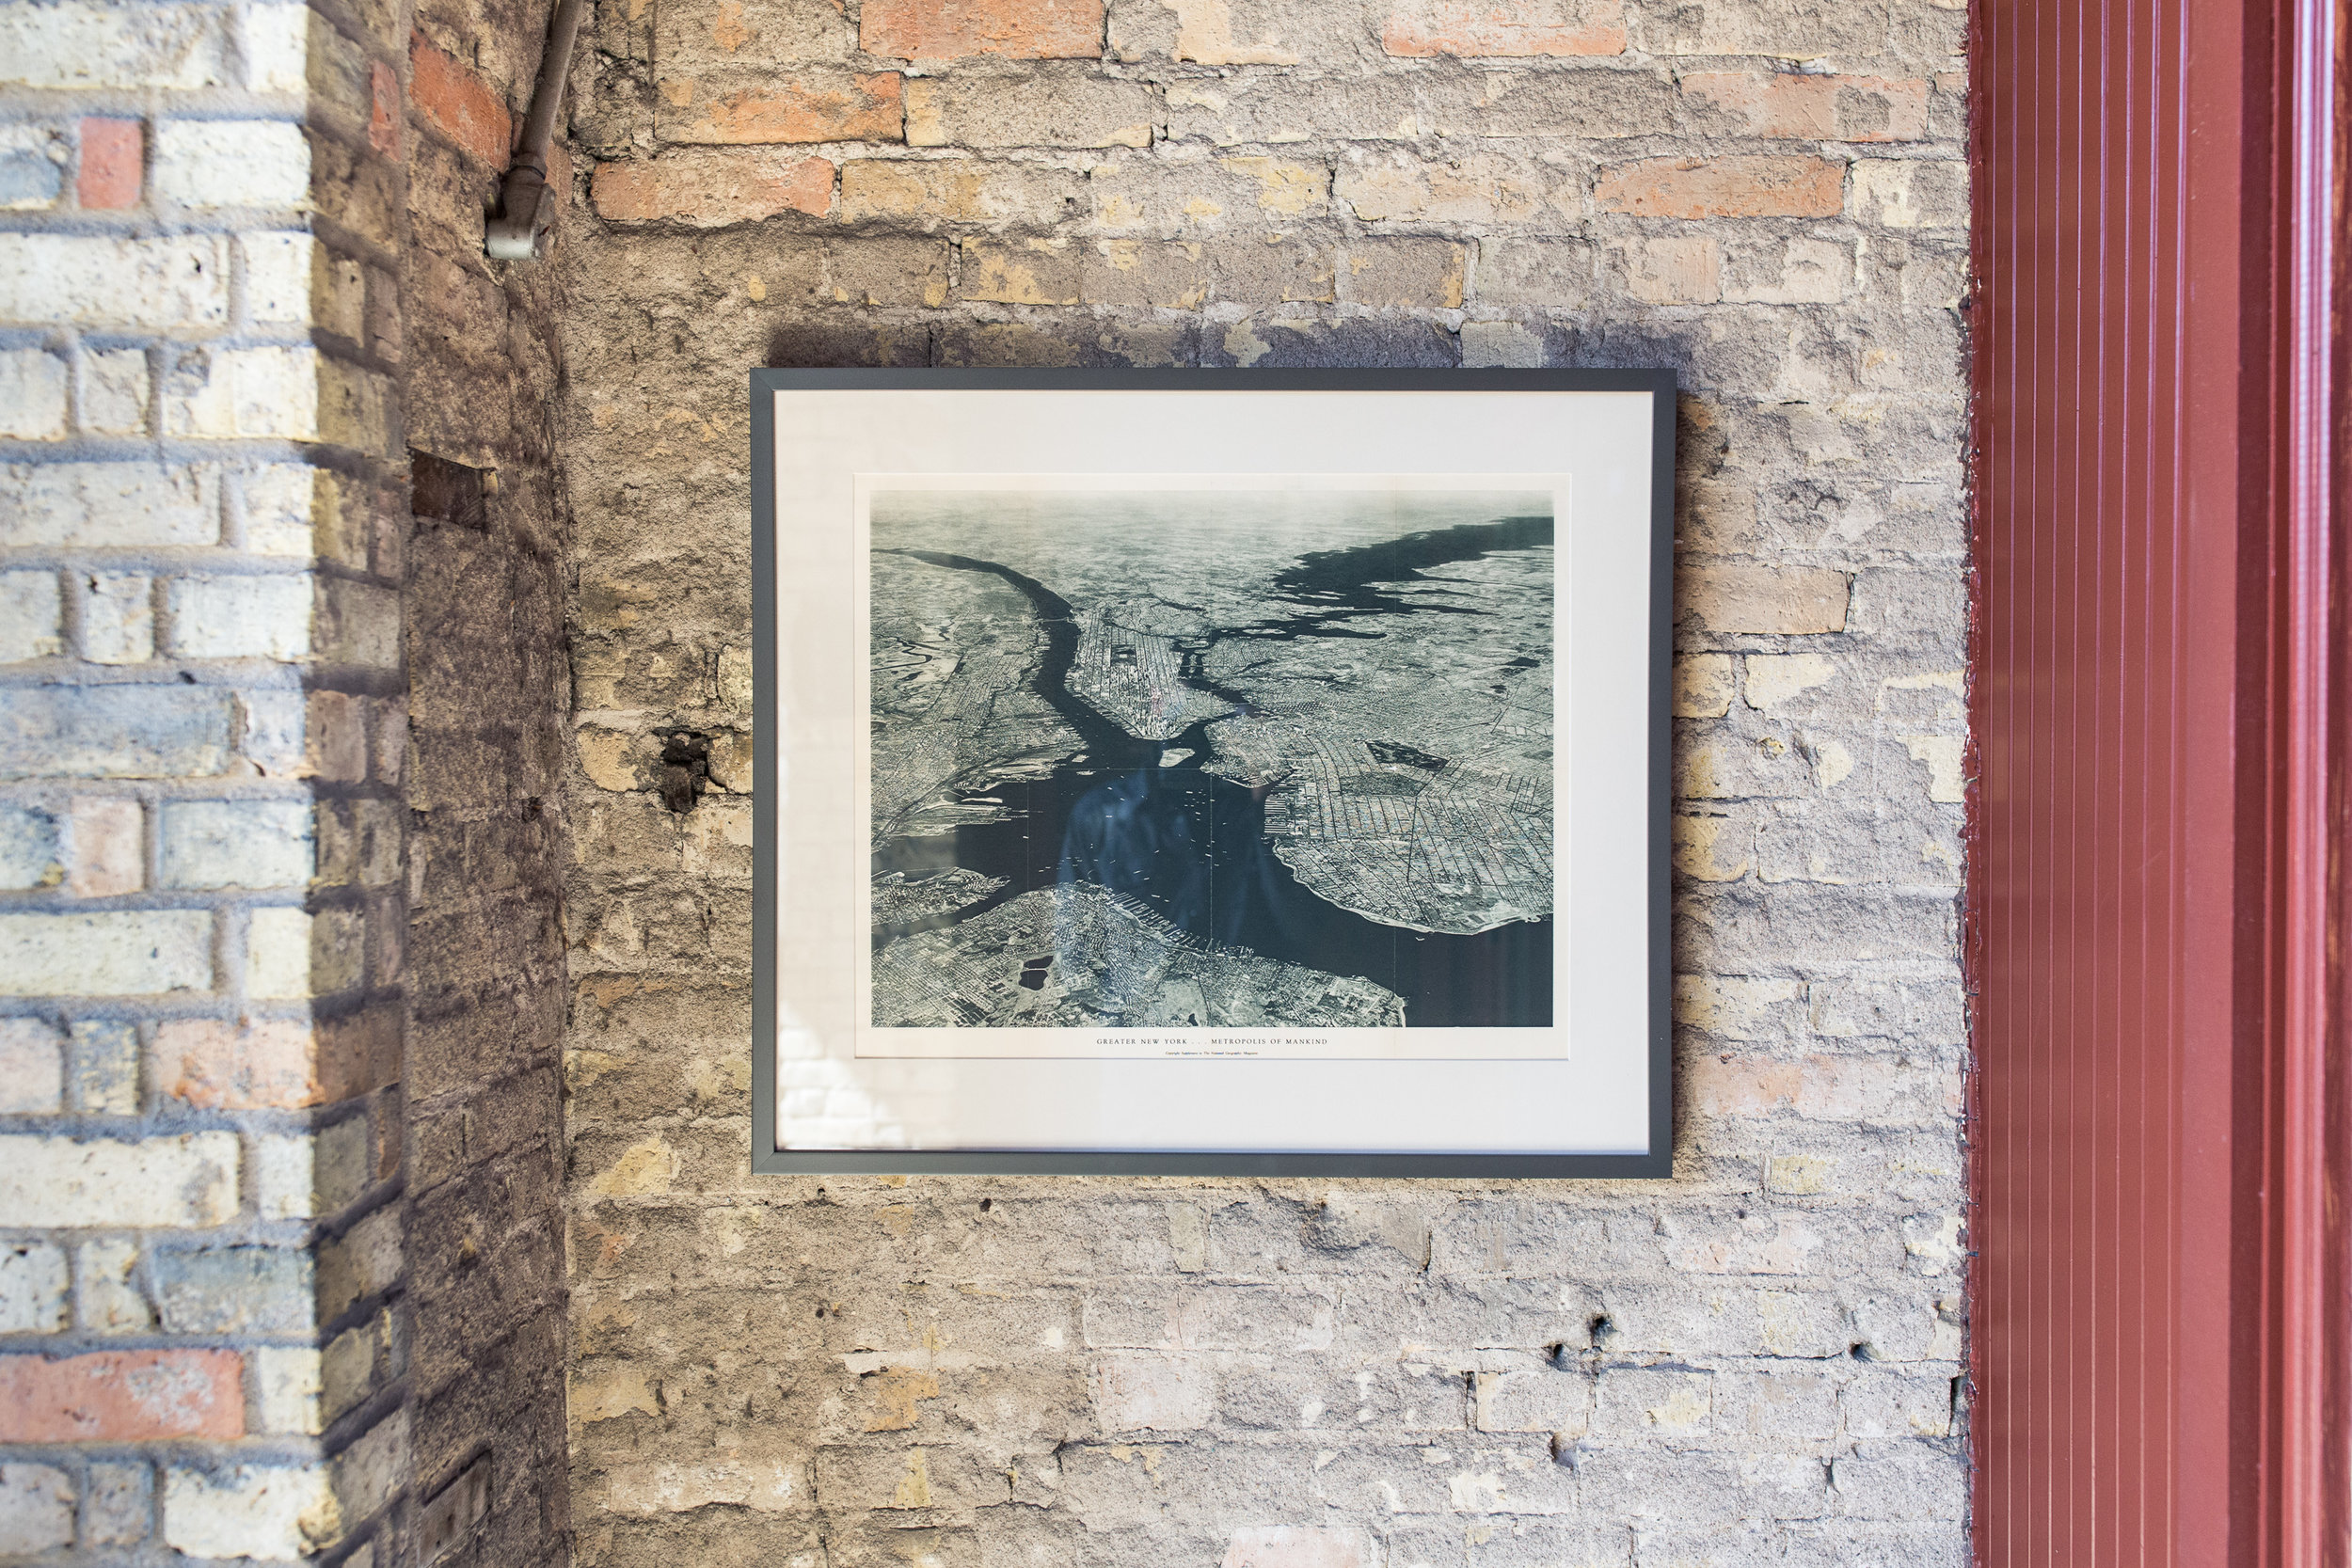 Vintage photograph framed in charcoal matte lacquer.